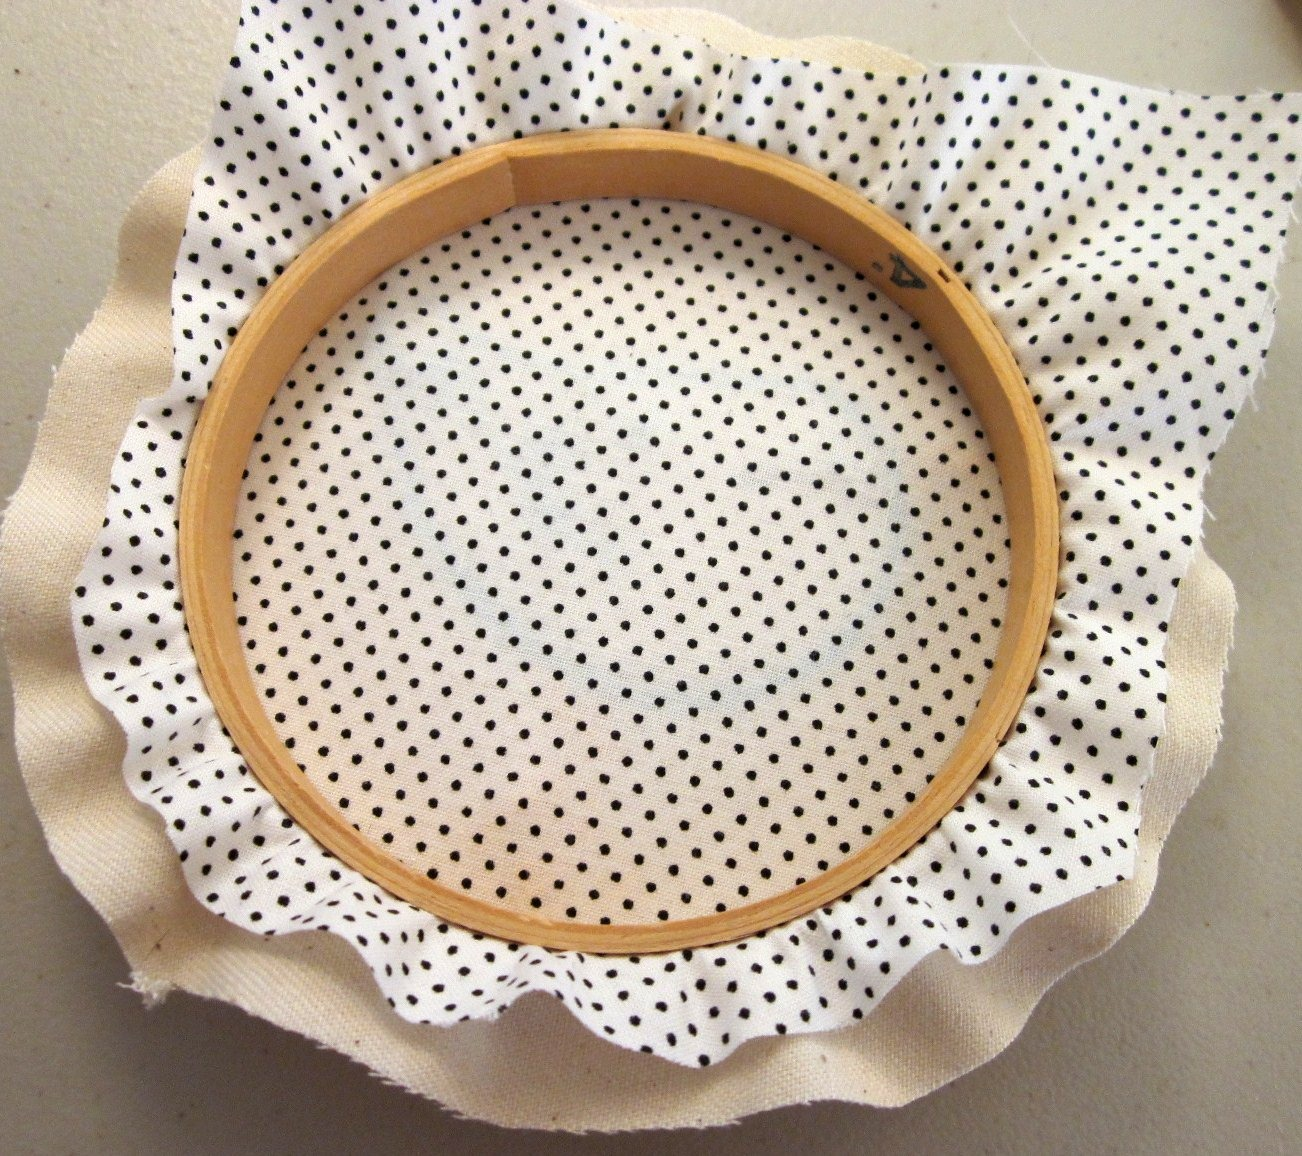 DIY Tutorial : Framed Embroidery Hoops, Copyright 2011 Lova Revolutionary